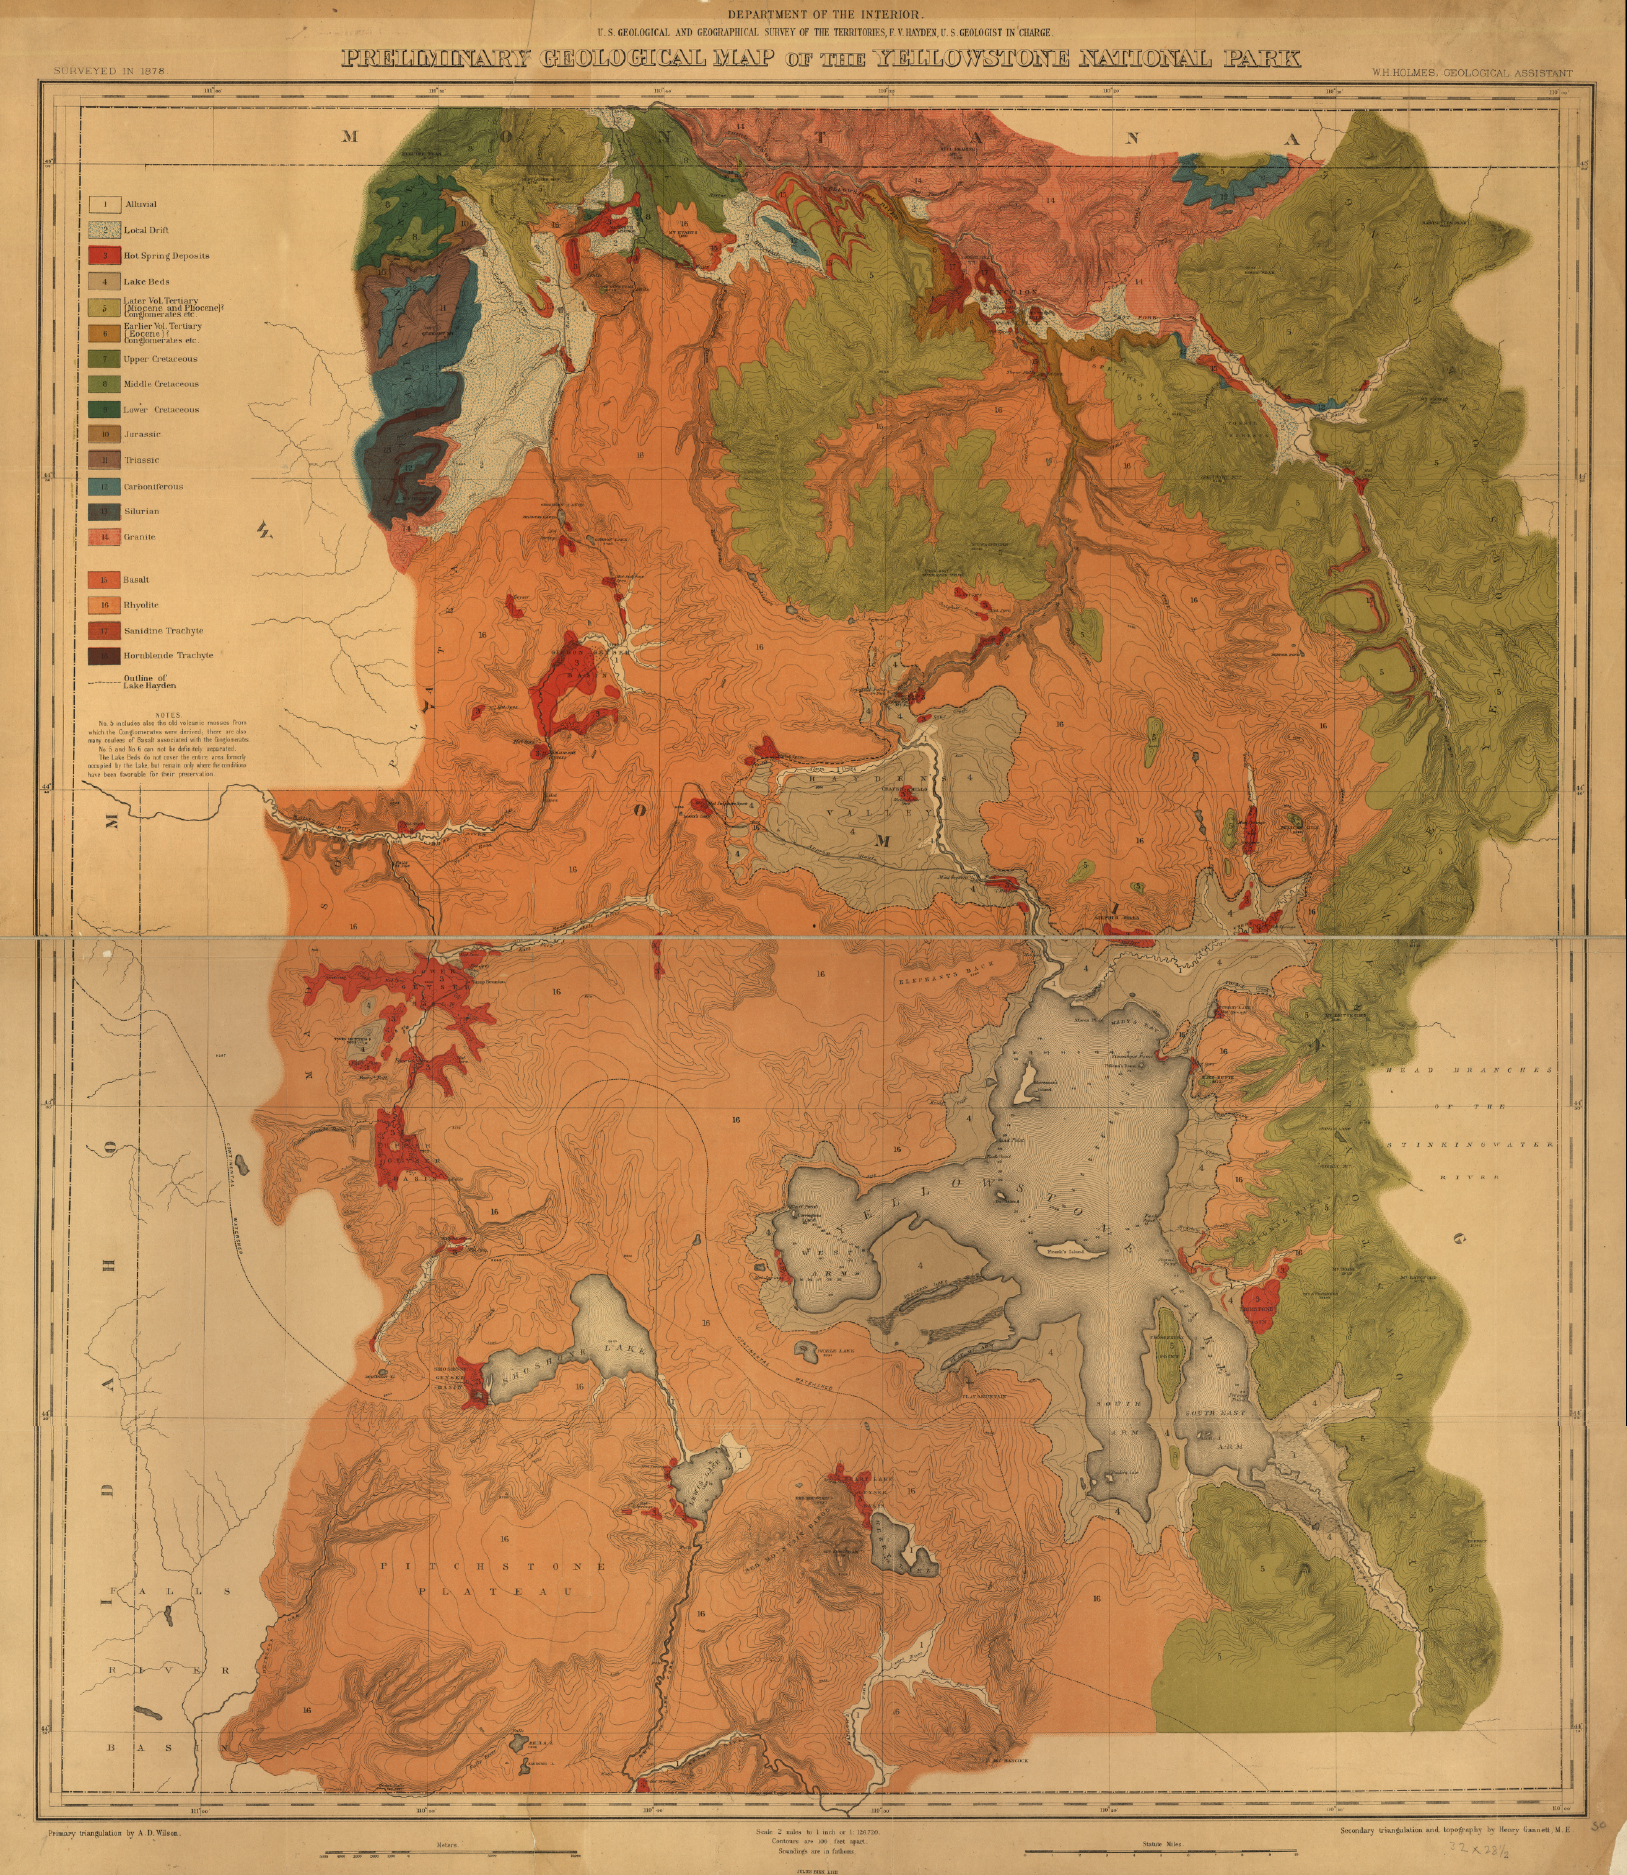 Yellowstone National Park 1878 Survey Map from the Library of Congress Collection